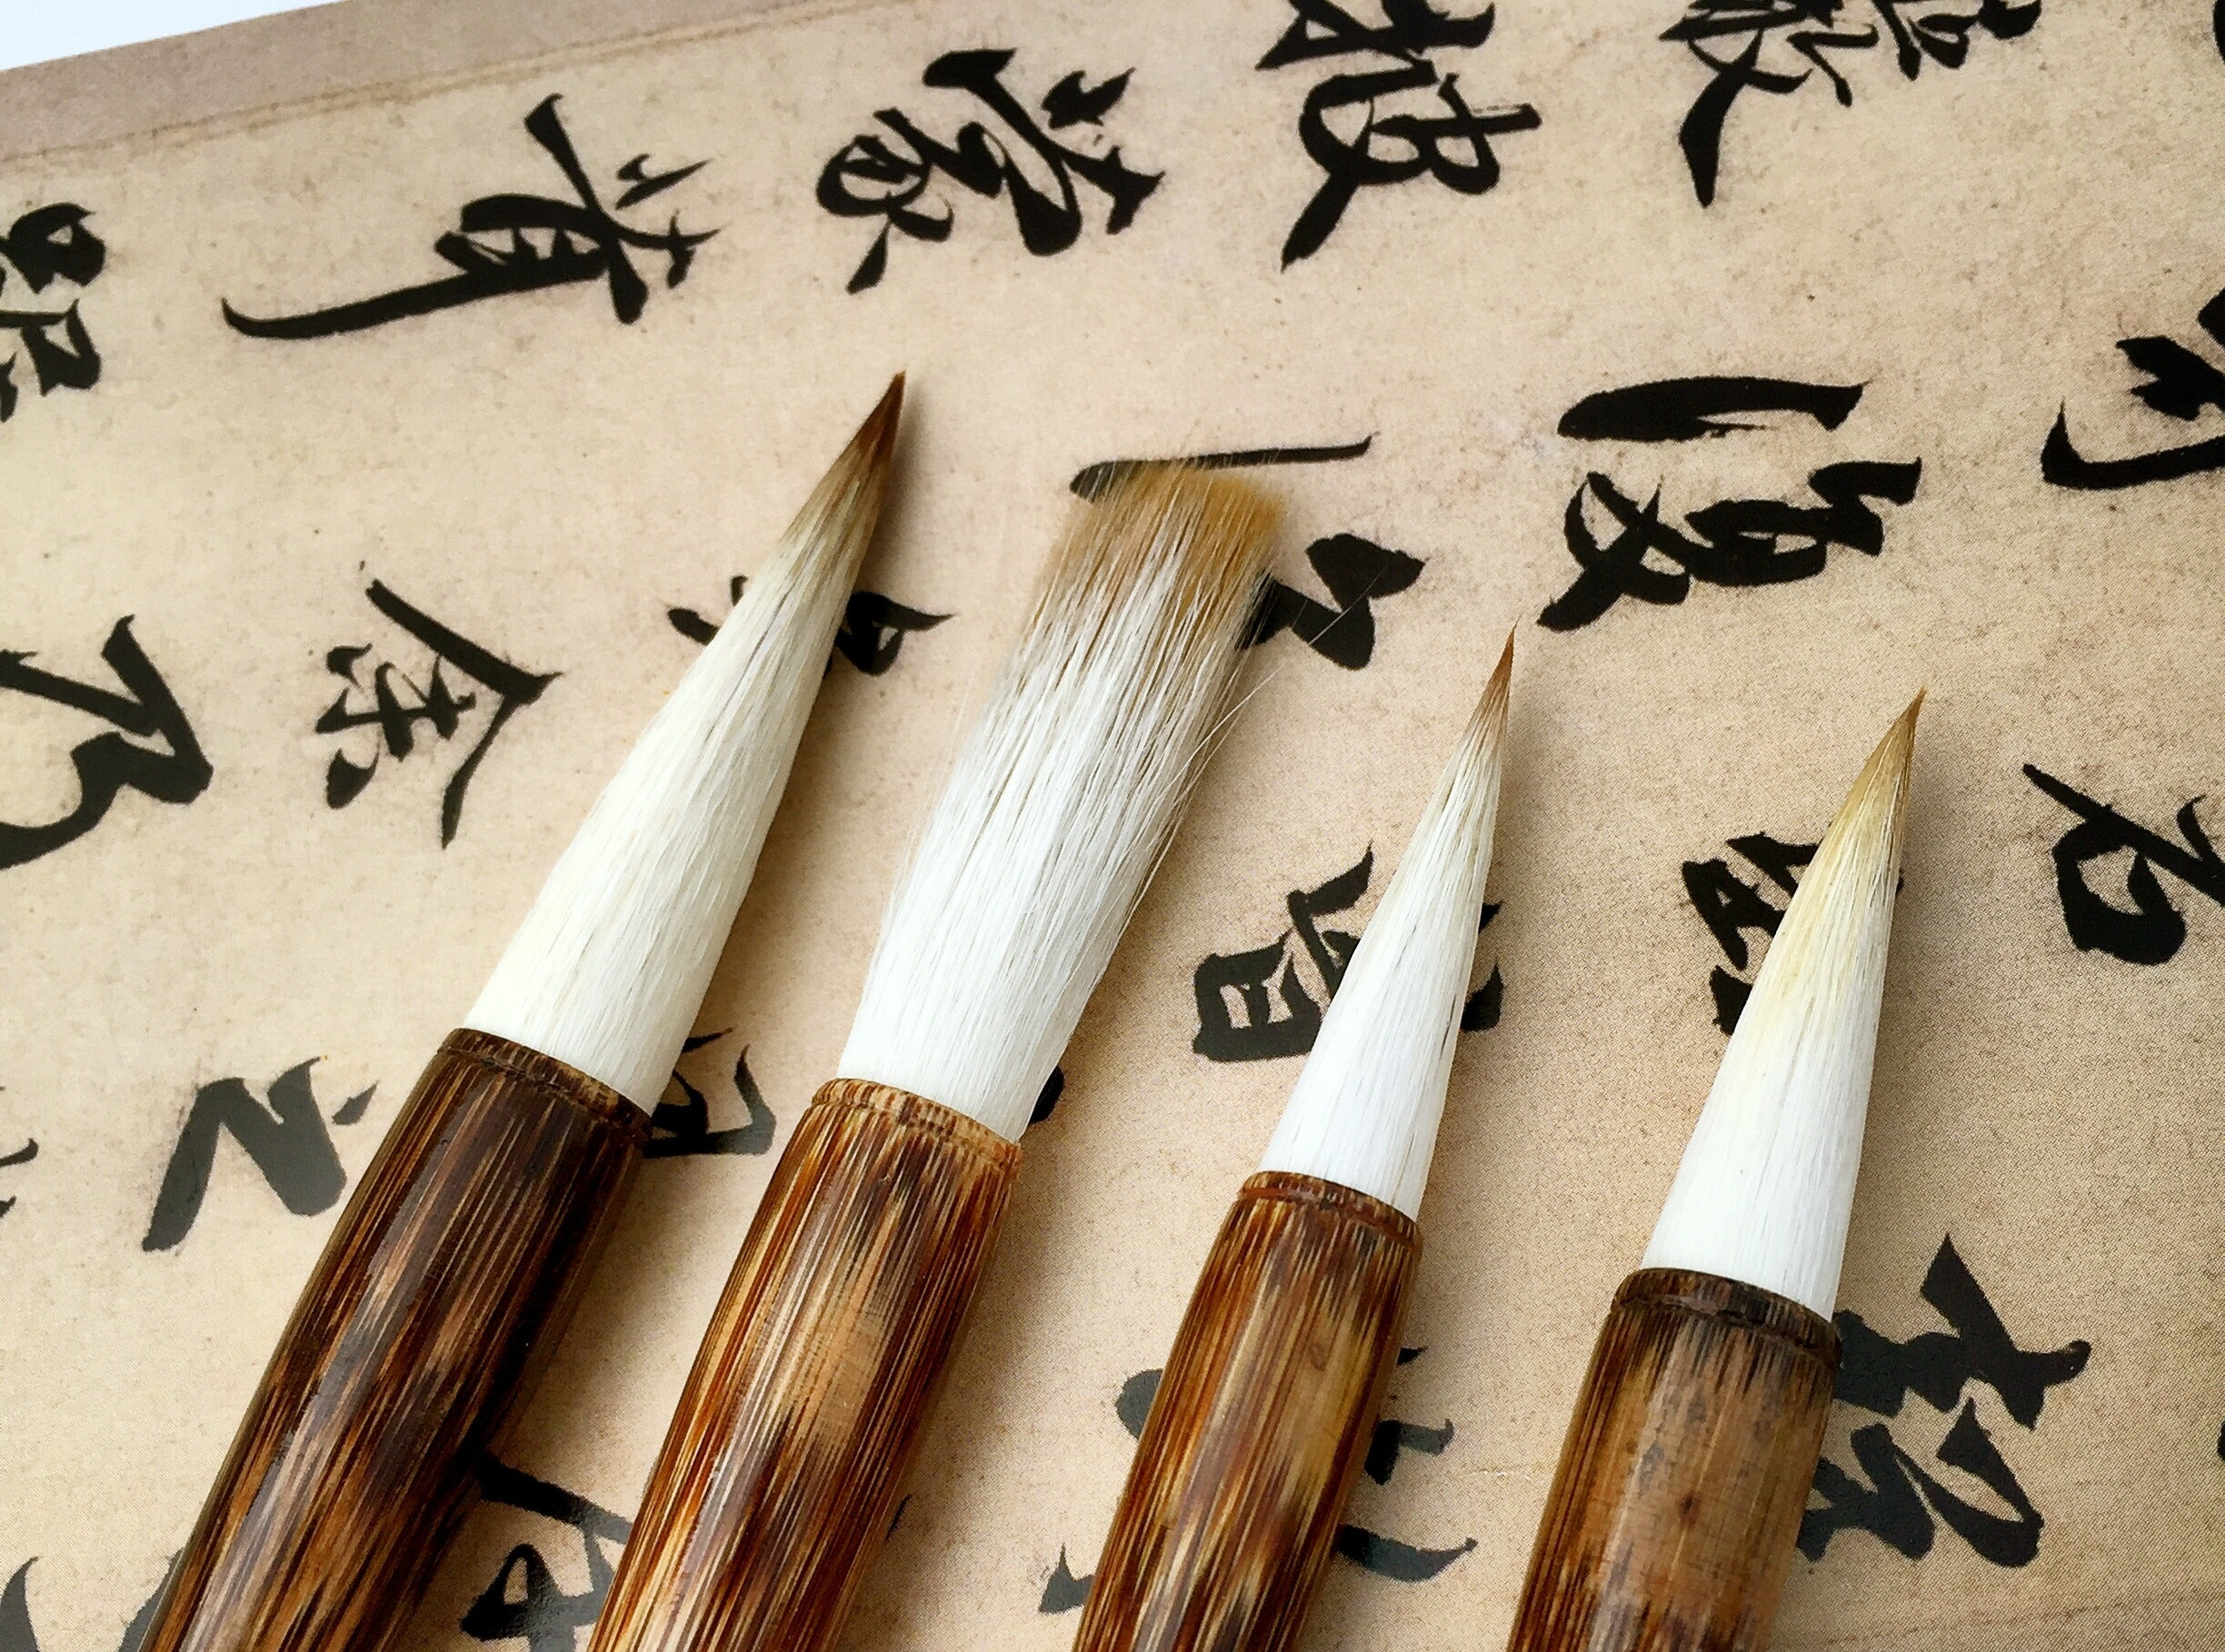 arts-and-crafts-composition-paint-brushes-261564.jpg